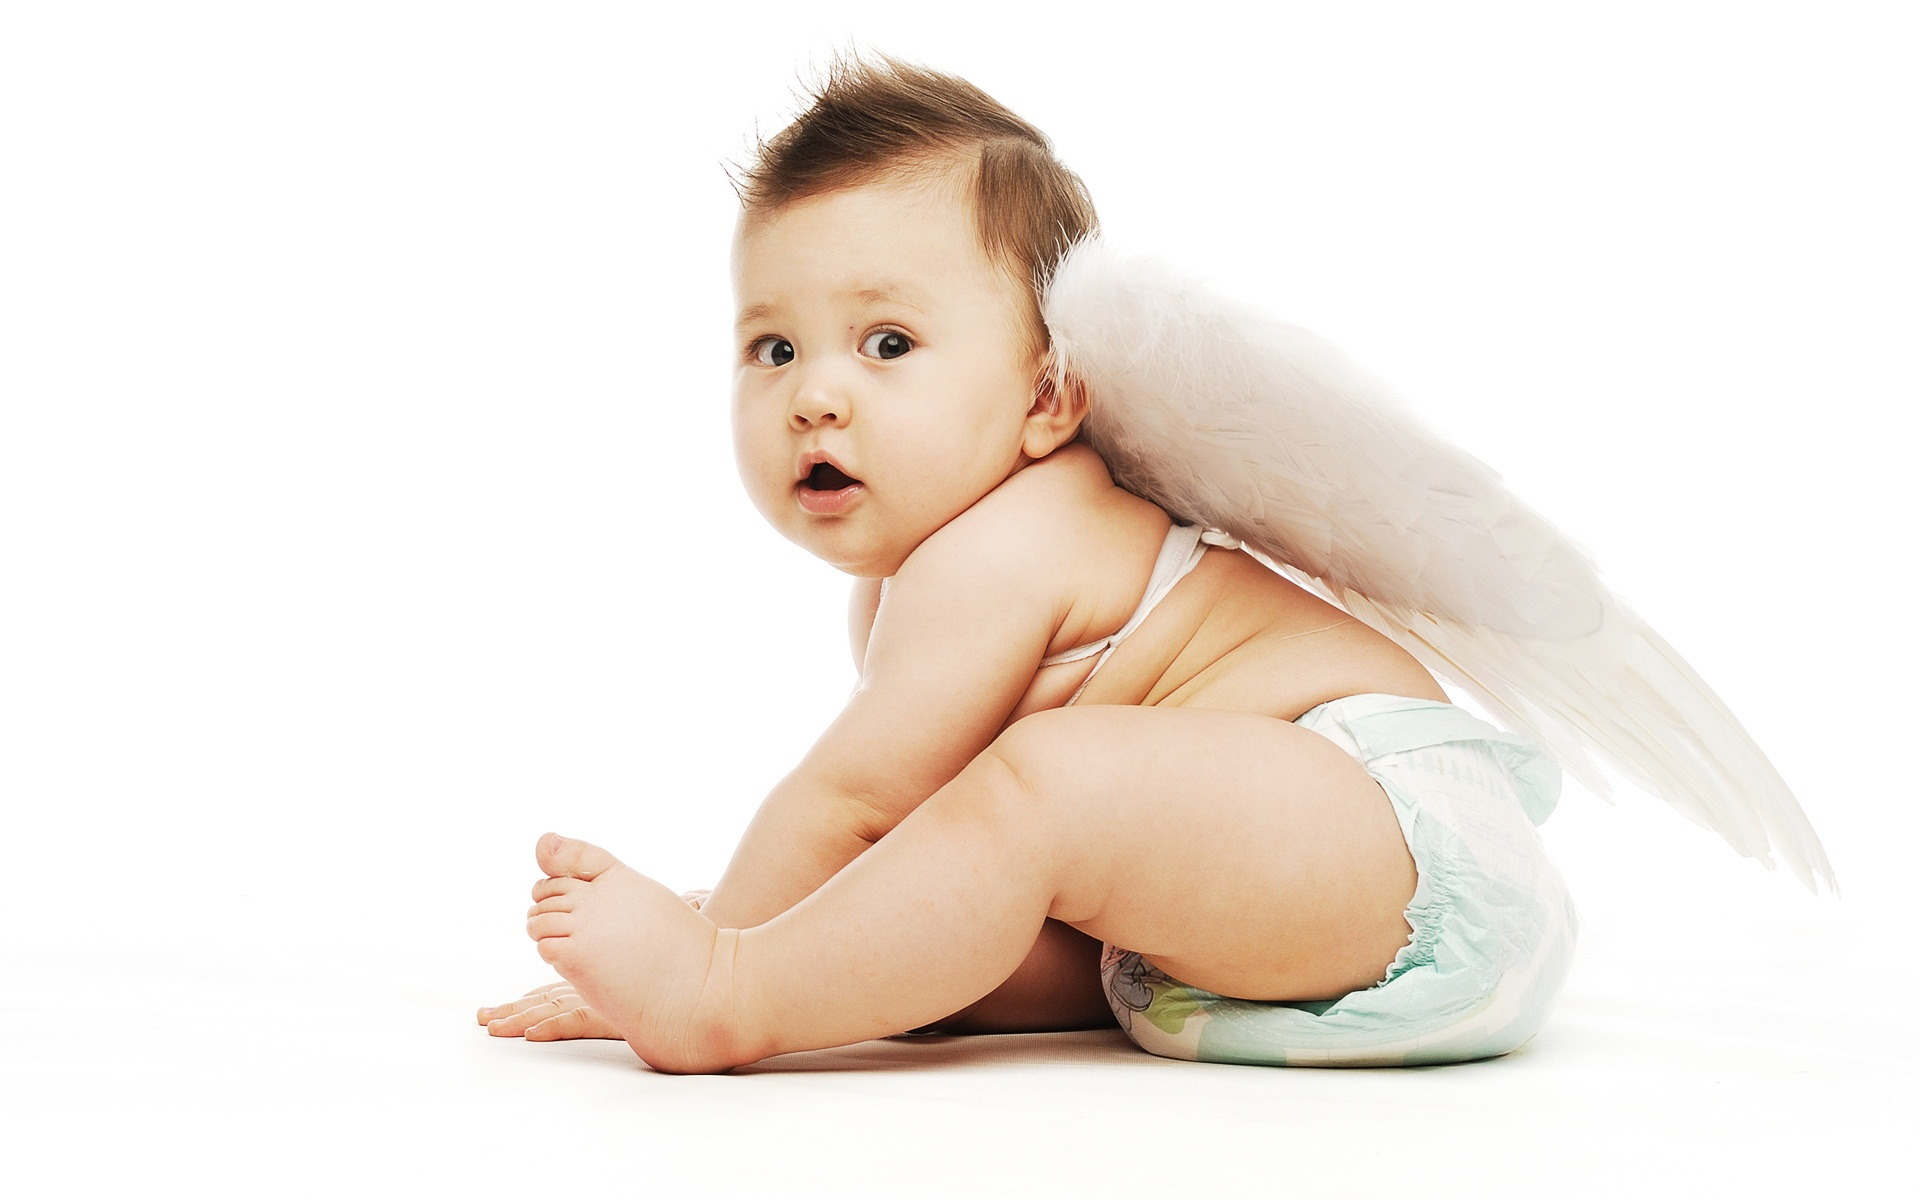 Cute Baby Angel Wallpaper World 1920x1200